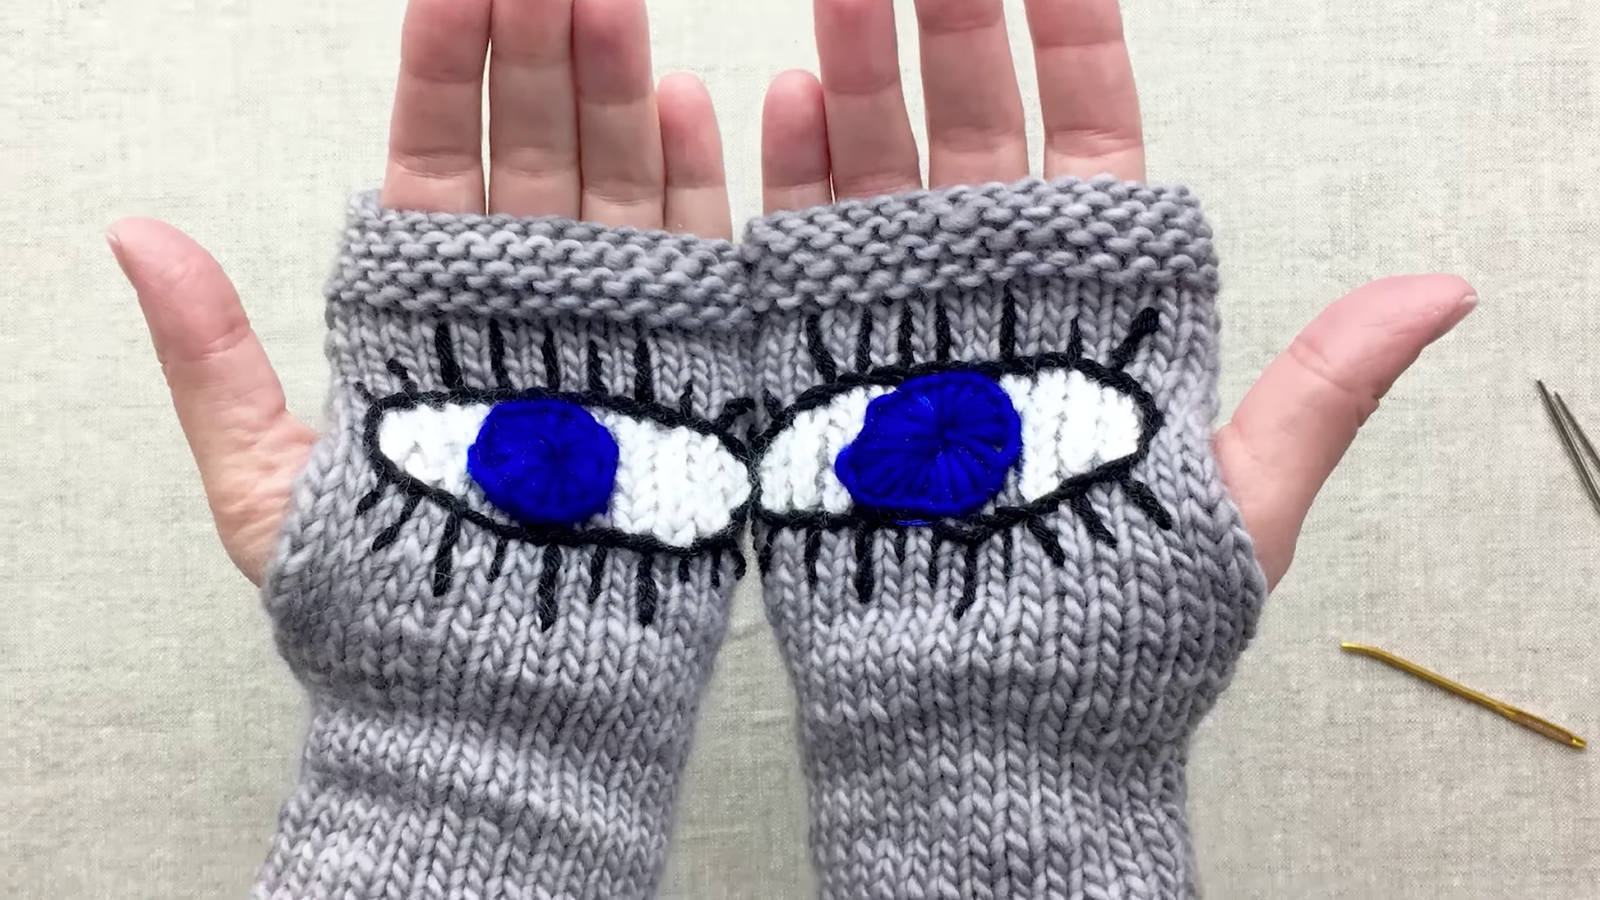 Crochet Gloves With Finger Holes >> How to Knit 'Evil Eye Gloves,' the Pussyhat of the March For Our Lives Rally